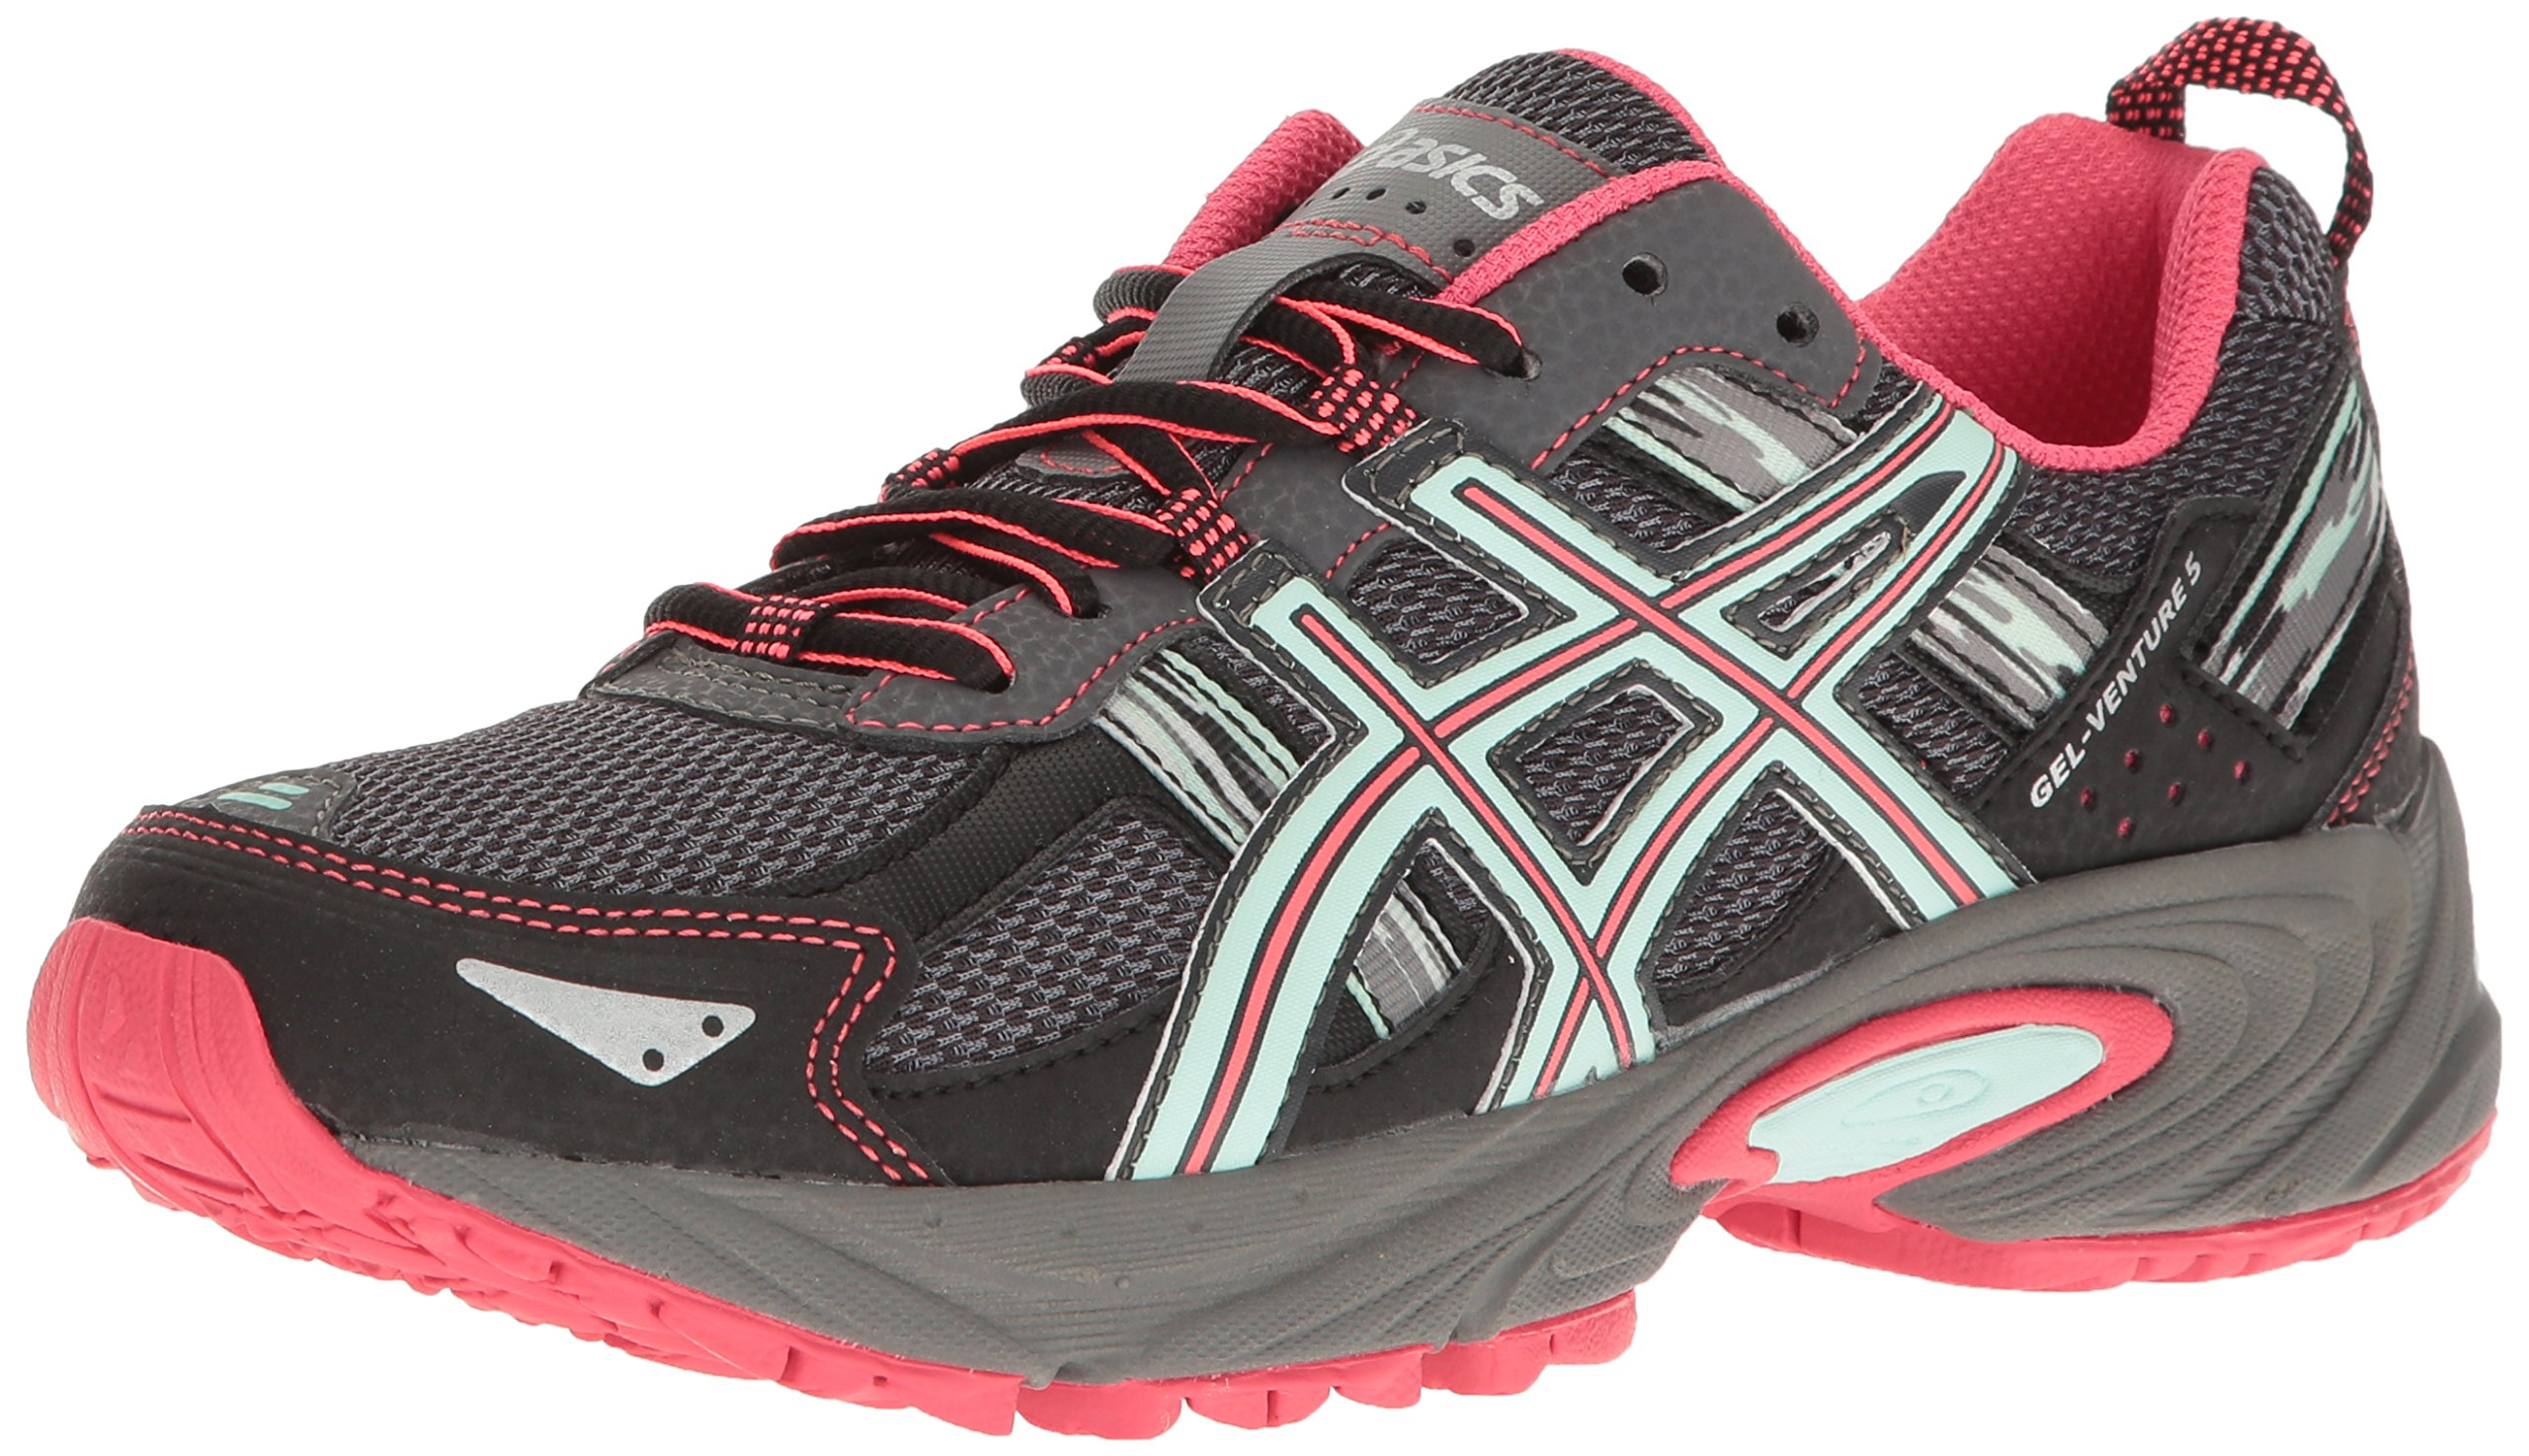 ASICS Women's Gel-Venture 5 Trail Runner Carbon/Diva Pink/Bay 6 M US